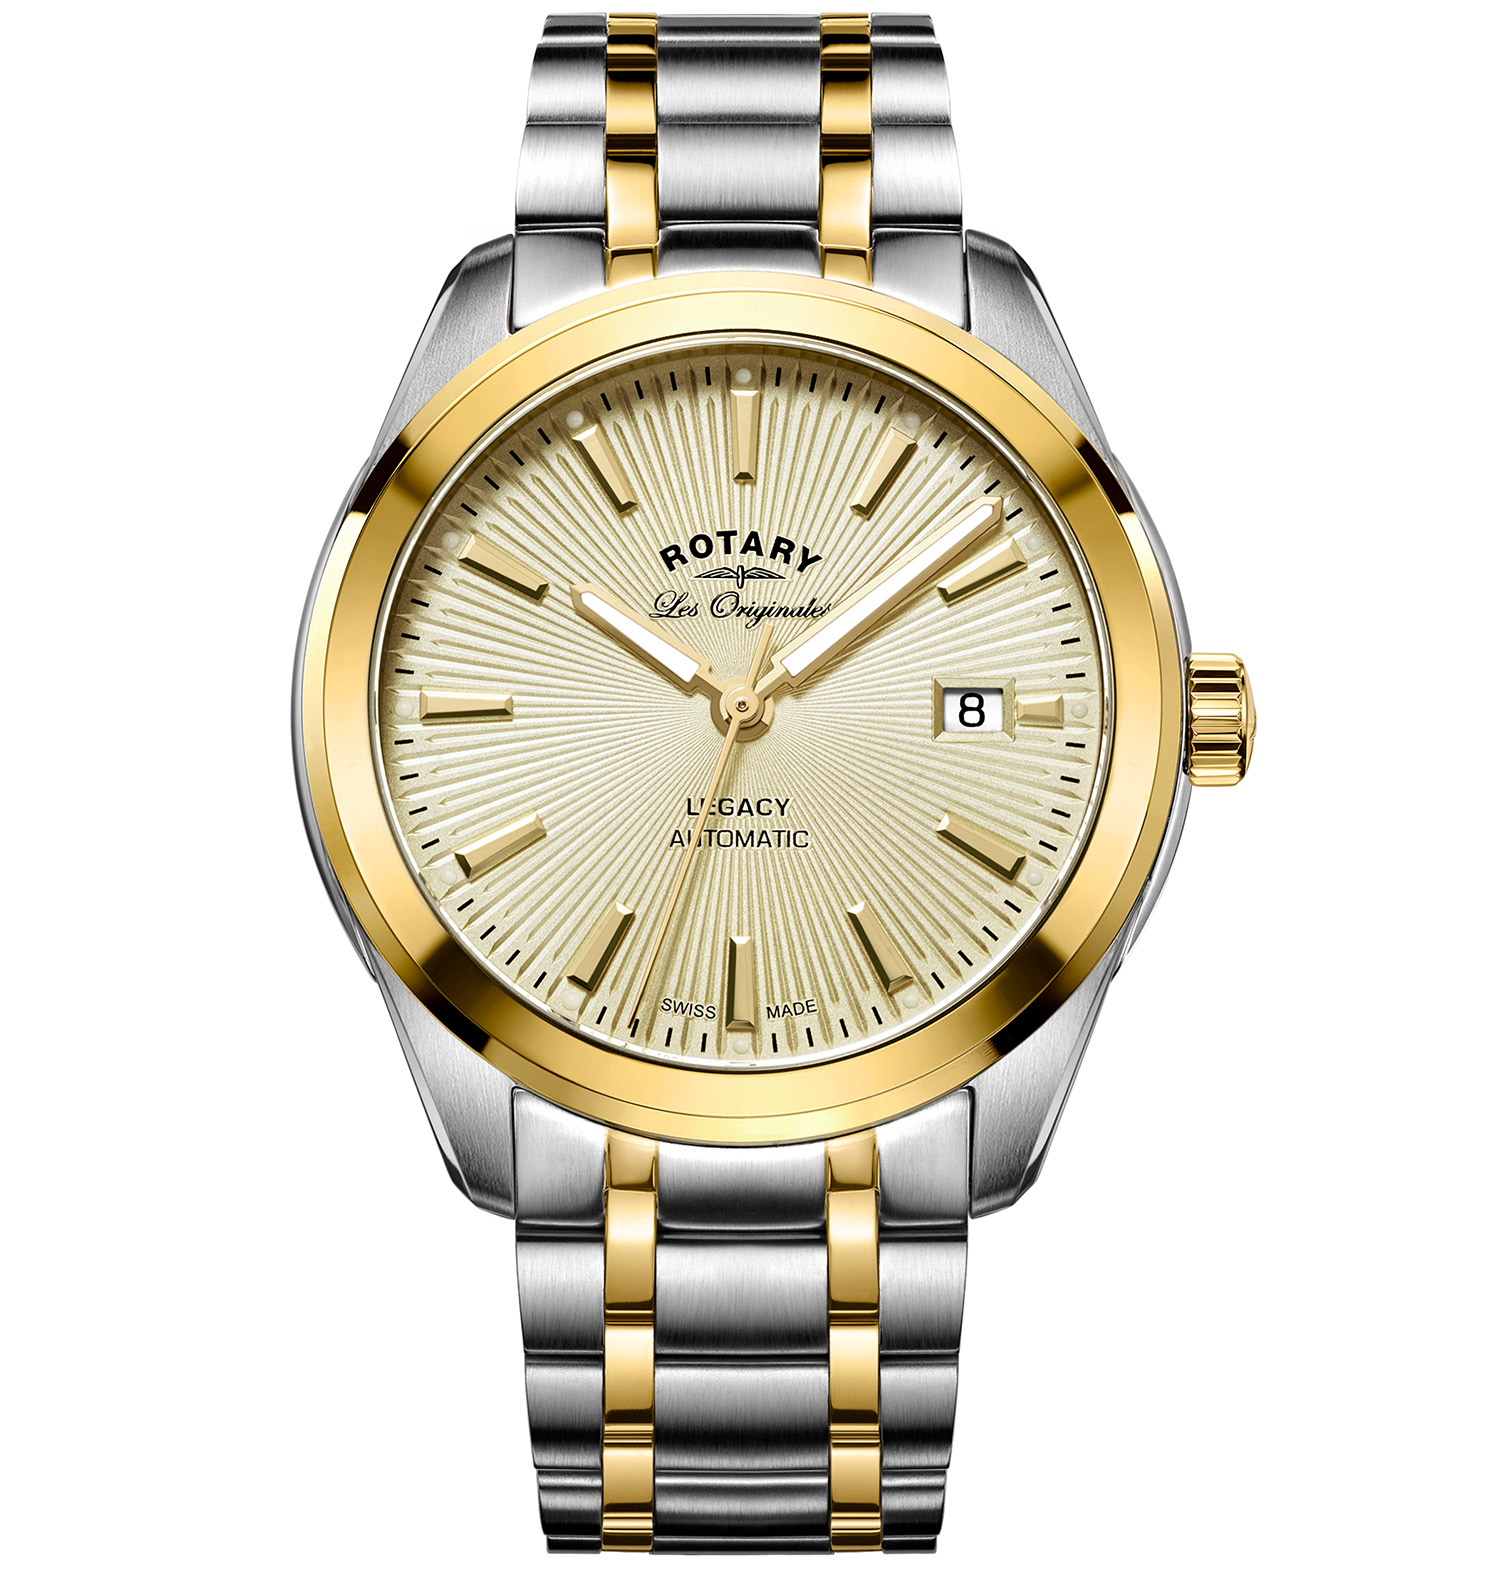 ROTARY LES ORIGINALES LEGACY AUTOMATIC SWISS GENTS WATCH